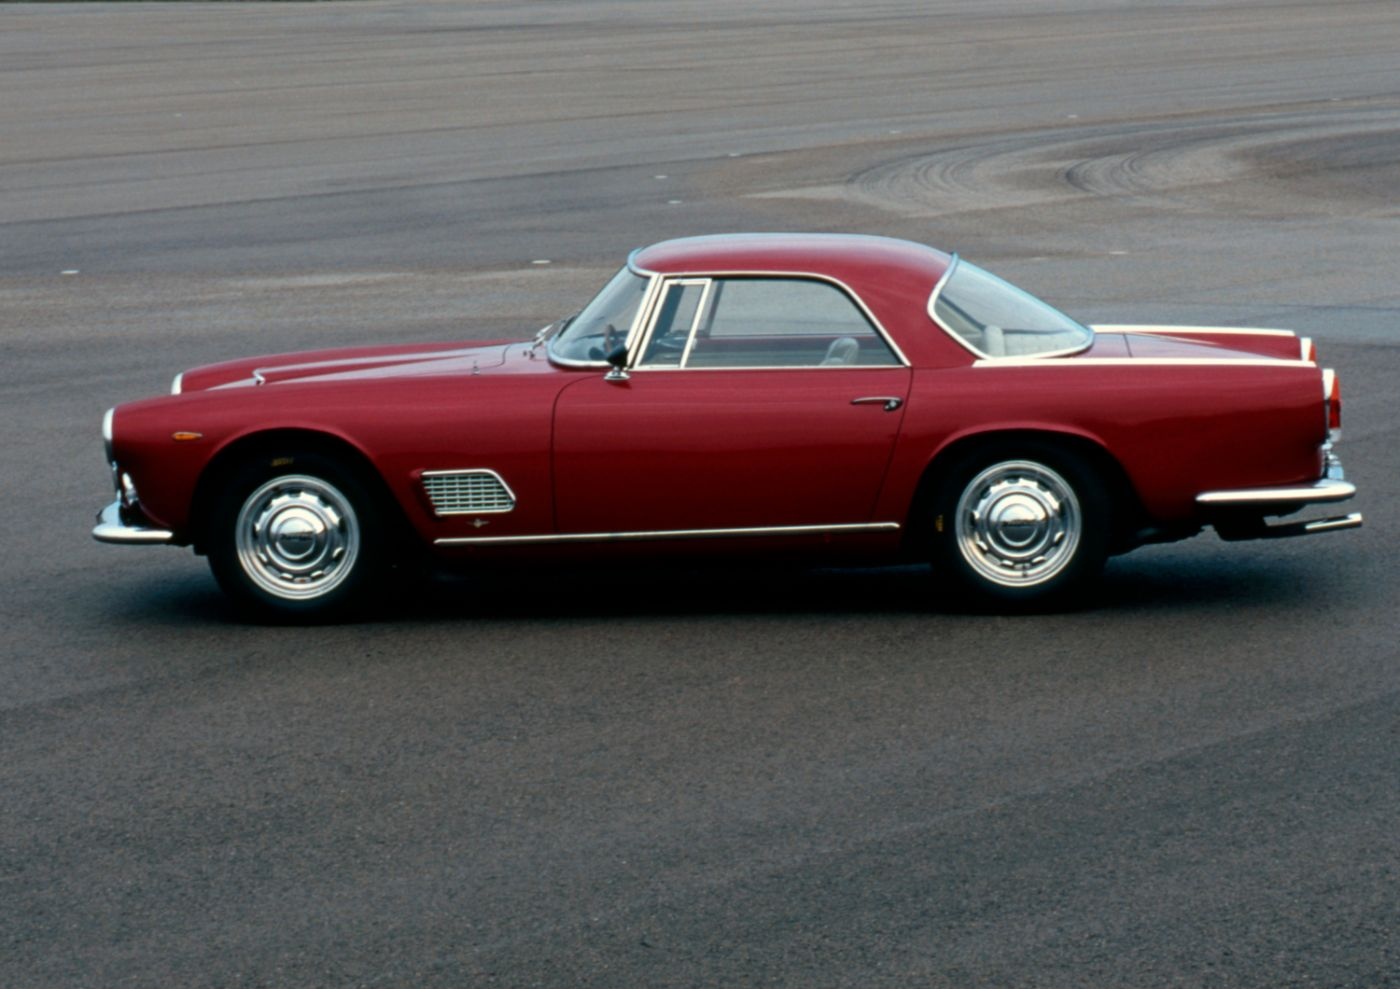 1957 Maserati 3500GT - side view of a classic car model in red